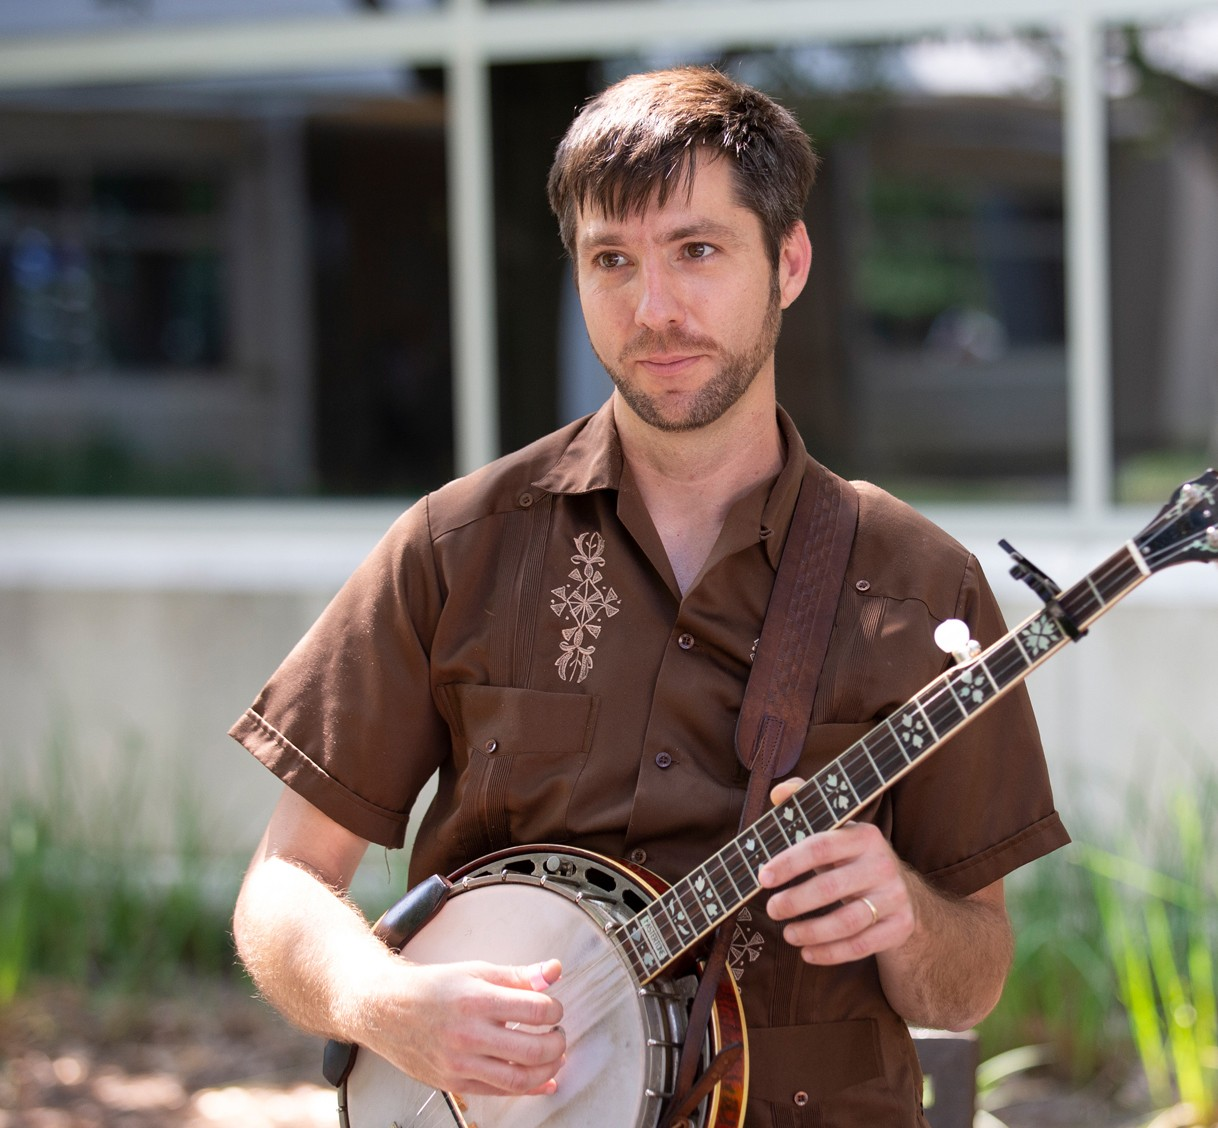 John Templeton outdoors at campus strumming banjo